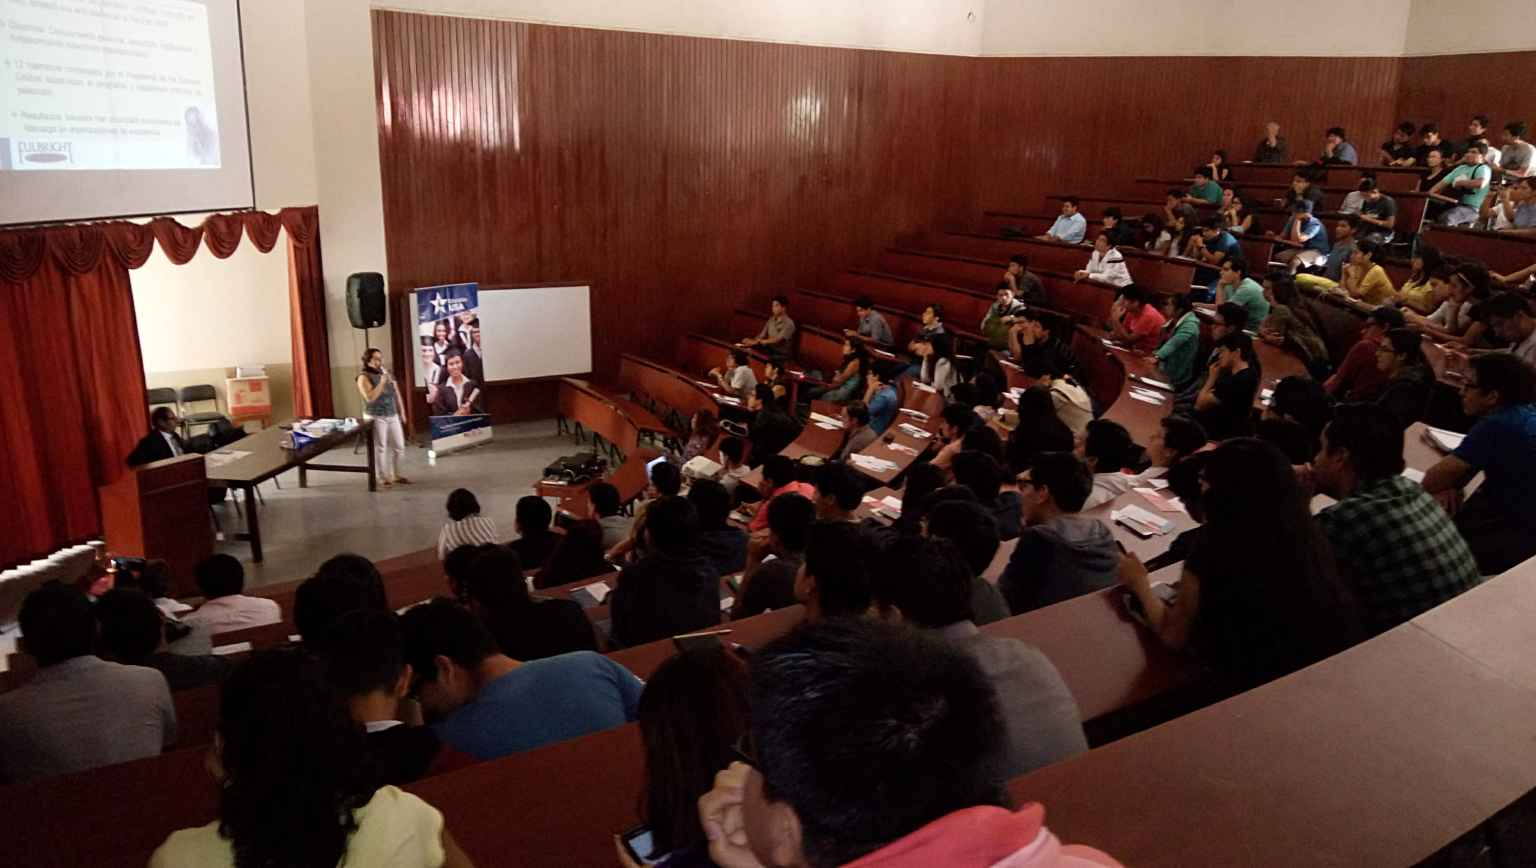 EducationUSA presenting at the National University of Trujillo and other institutions in collaboration with Fulbright Commission.